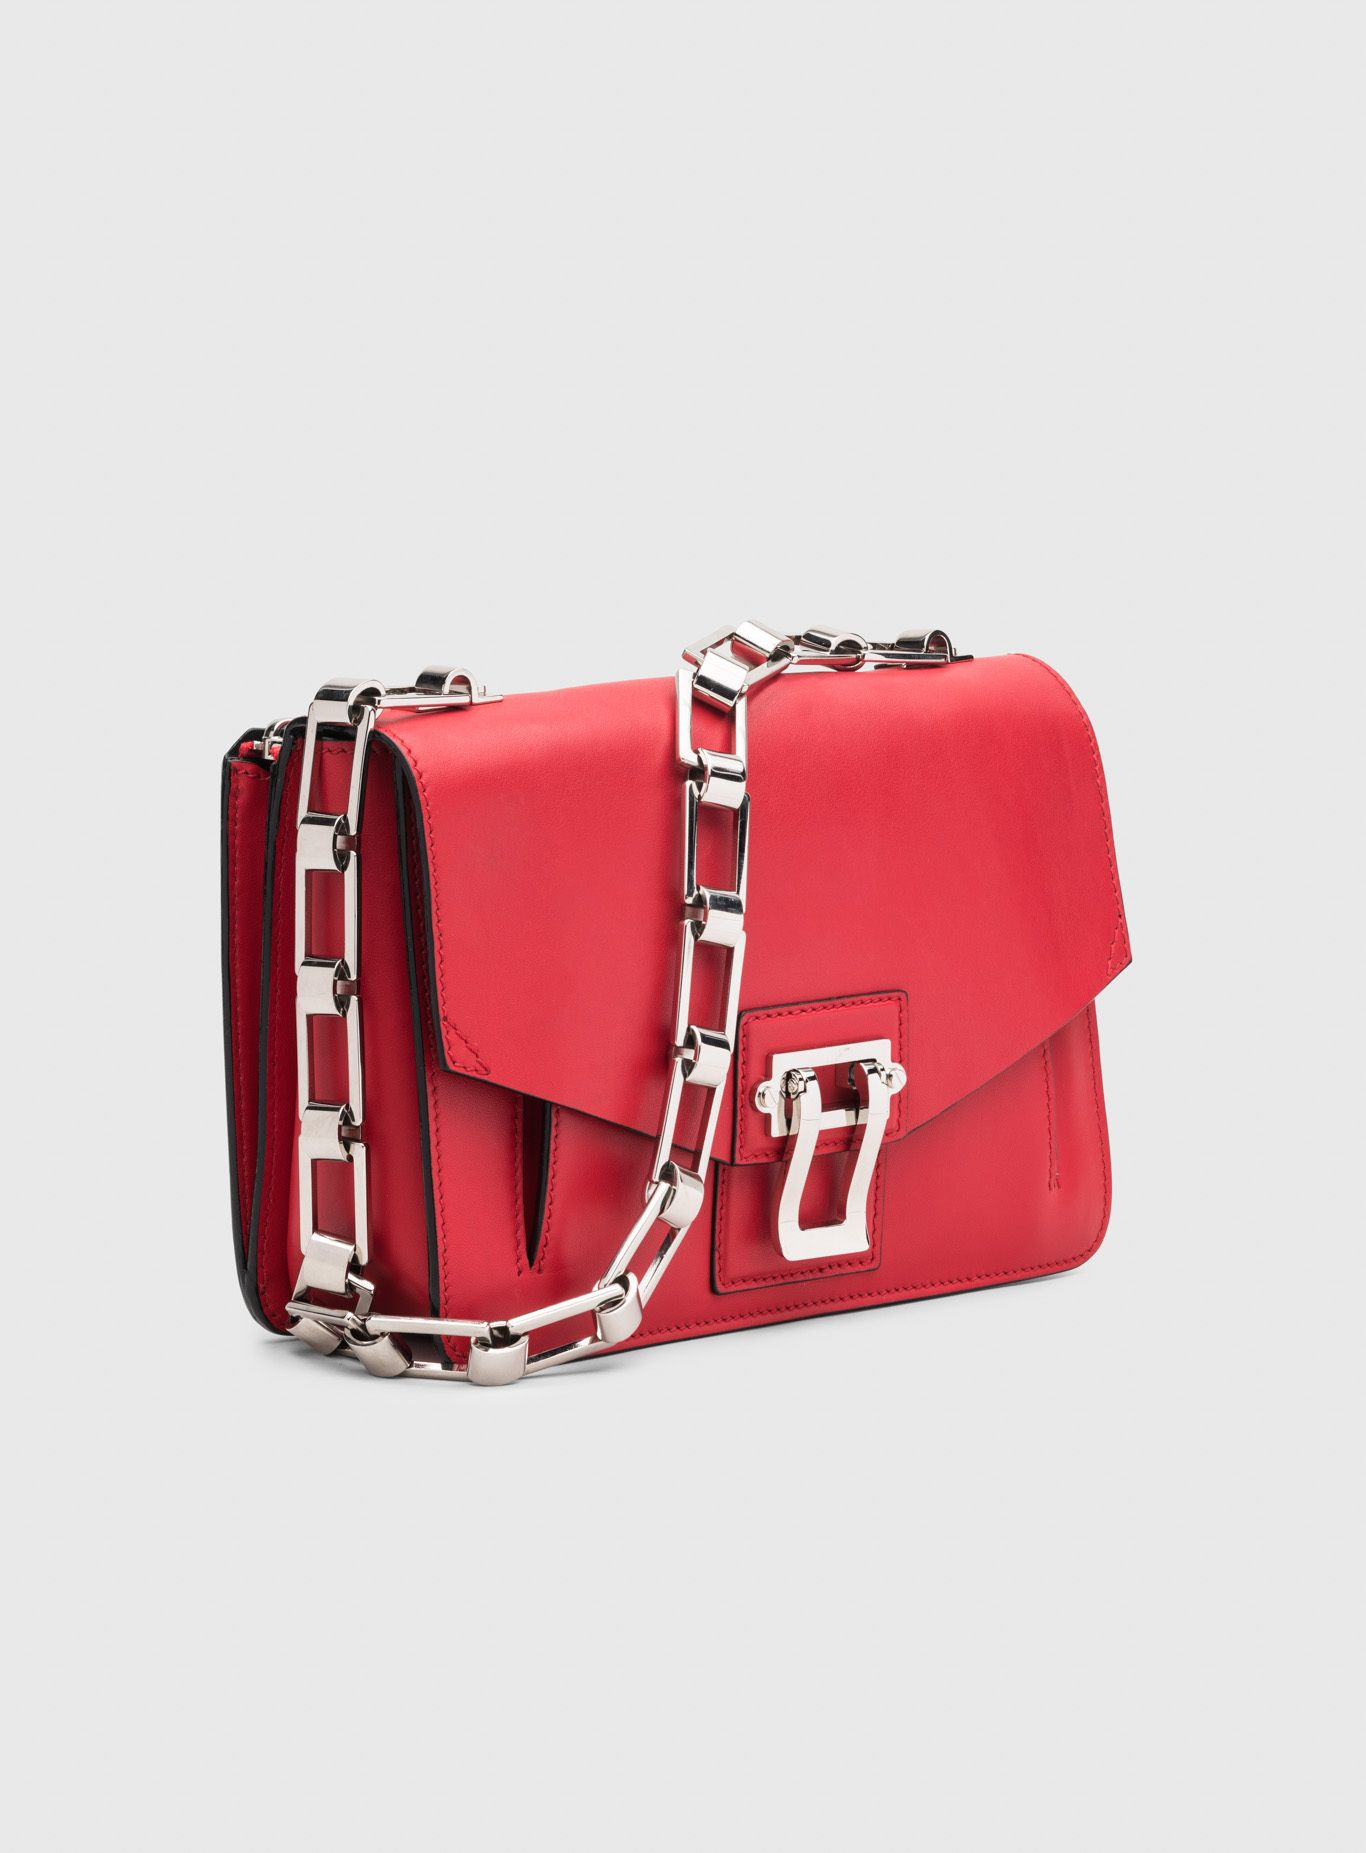 Proenza Schouler Hava Chain Handbag Purchase For Sale Outlet Footlocker Pictures Outlet Discount Wholesale Price Cheap Price New Arrival Online KbAqX